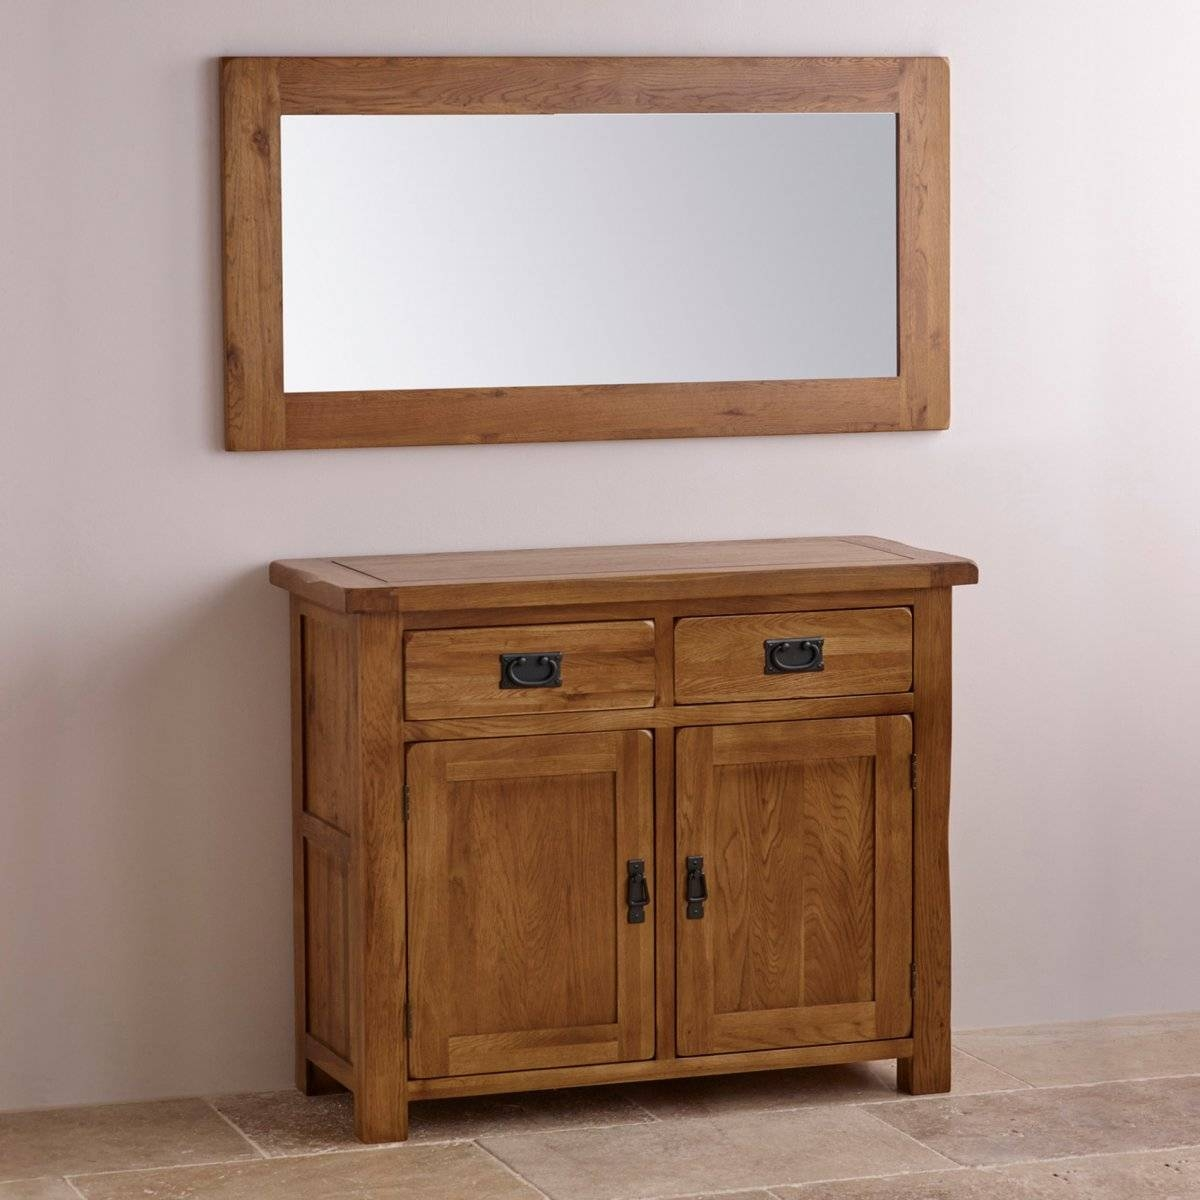 Original Rustic Wall Mirror In Solid Oak | Oak Furniture Land with regard to Rustic Oak Mirrors (Image 16 of 25)